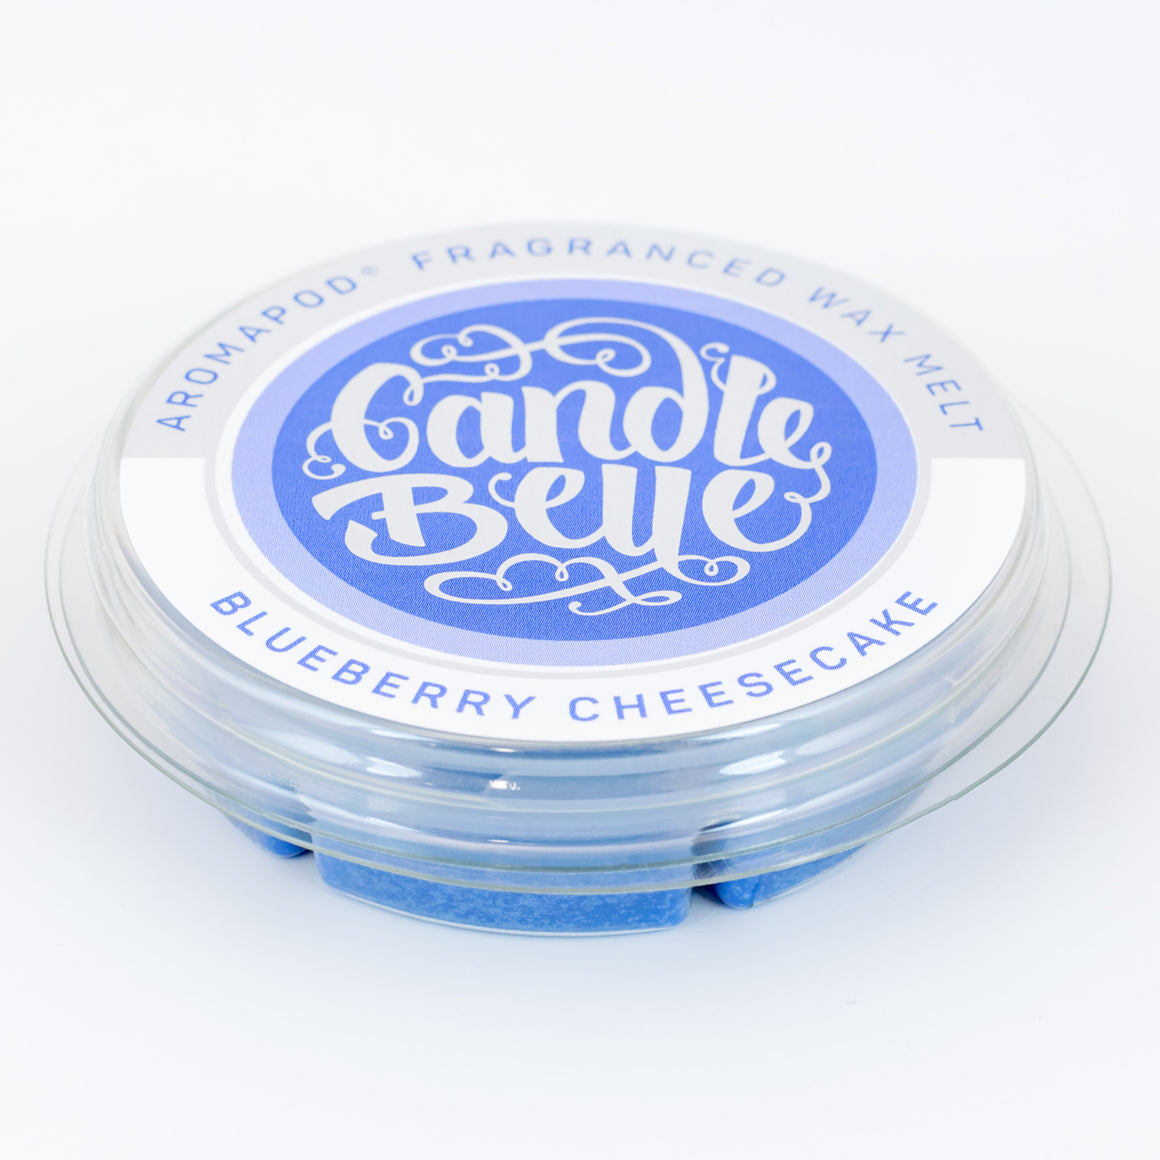 Candle Belle® Aromapod® Blueberry Cheesecake Fragranced Wax Melt 48g (9 Pack) - Candle Belle® Trade